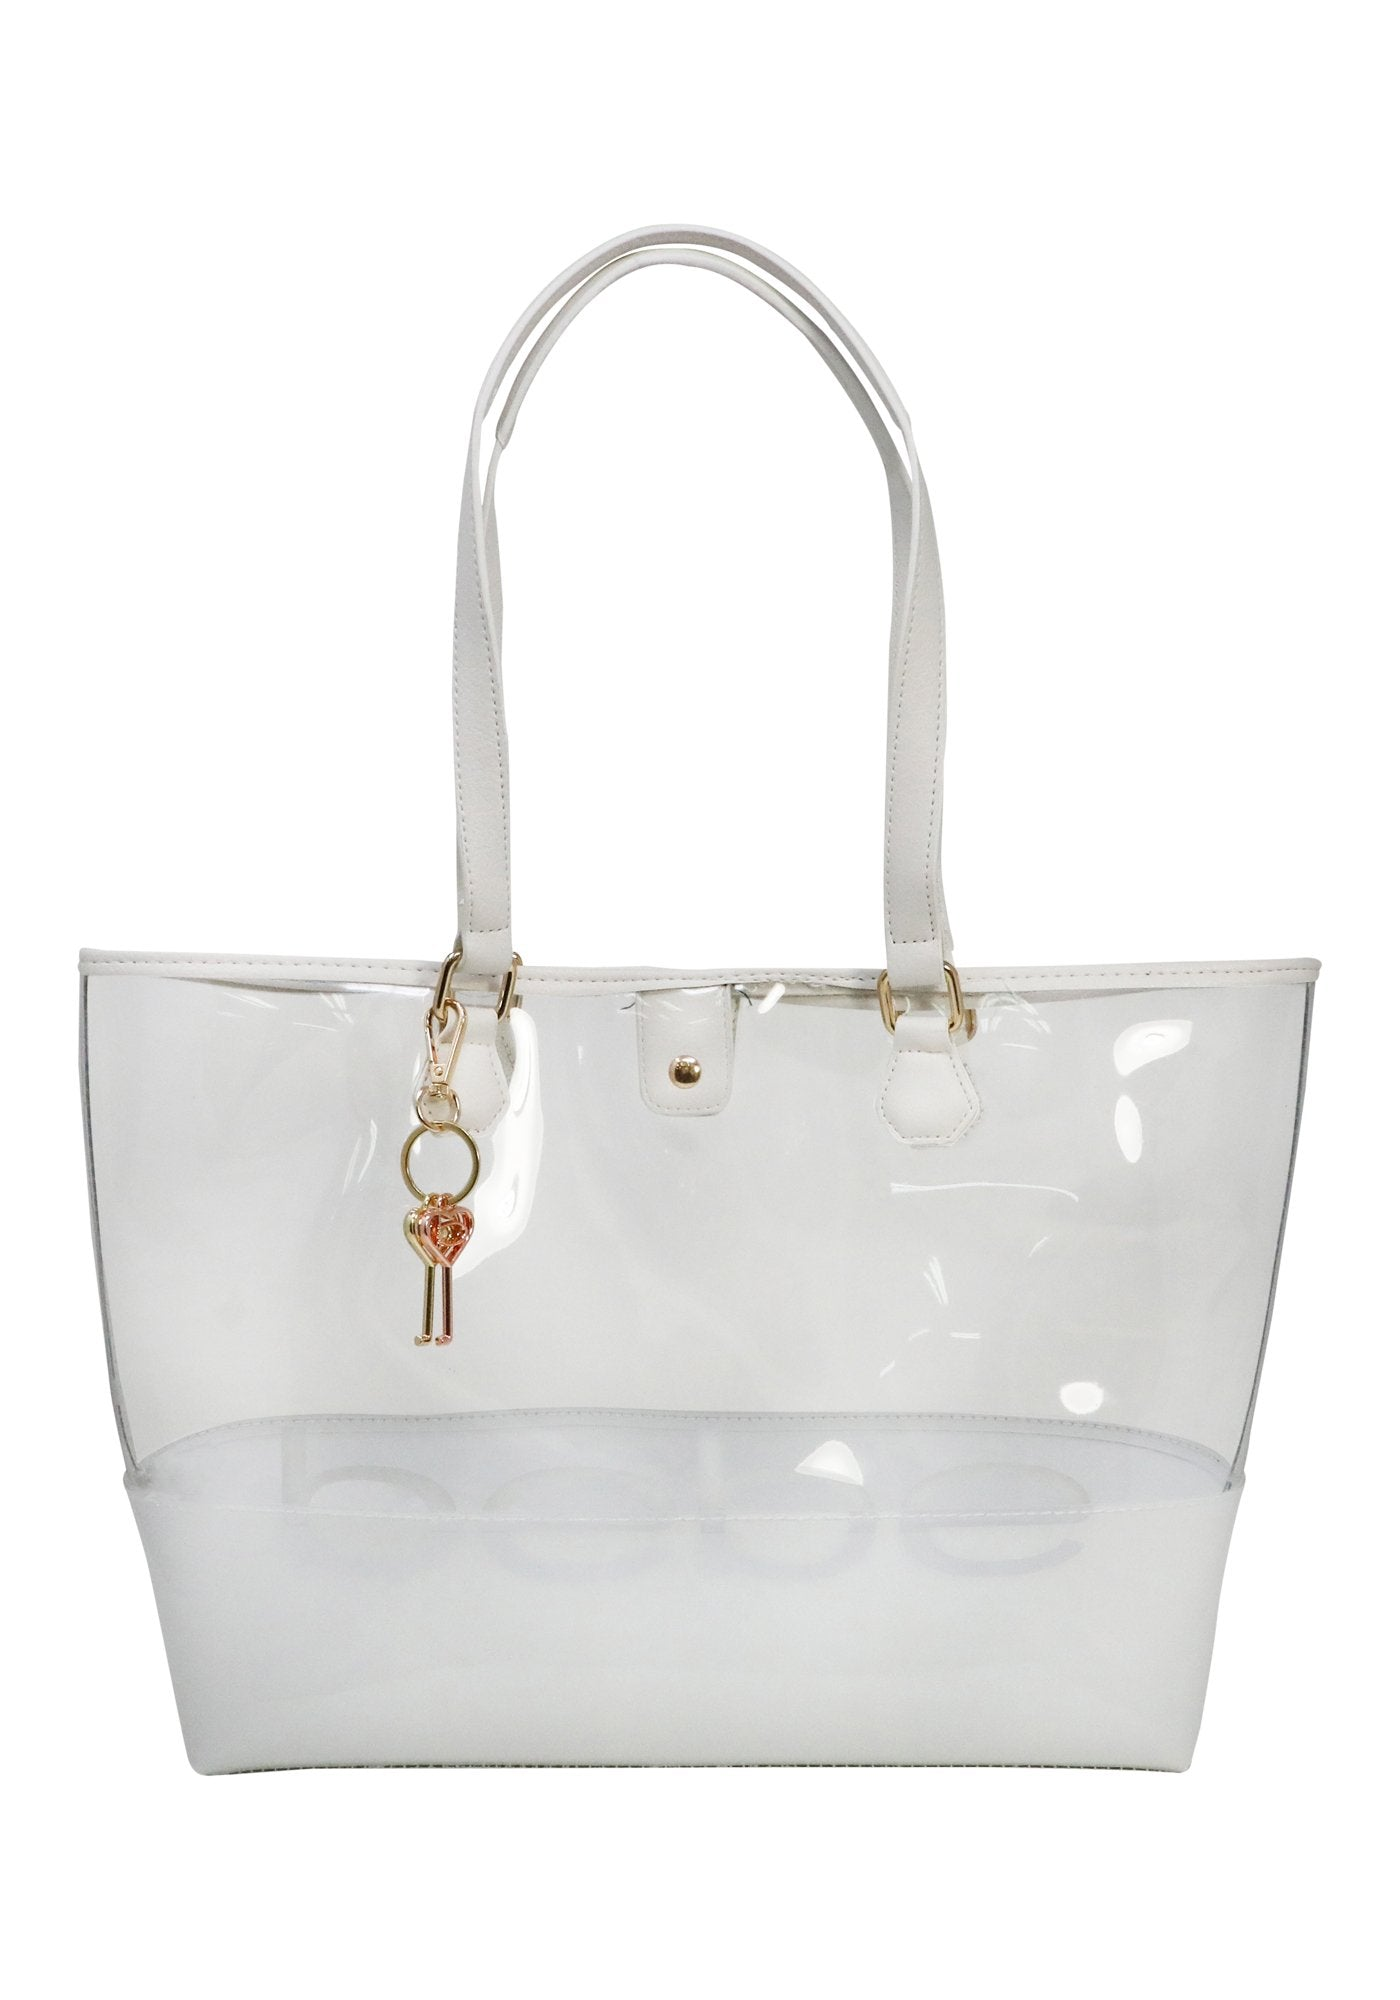 Bebe Women's Lindsey Clear Tote Bag, Size X-Large in White